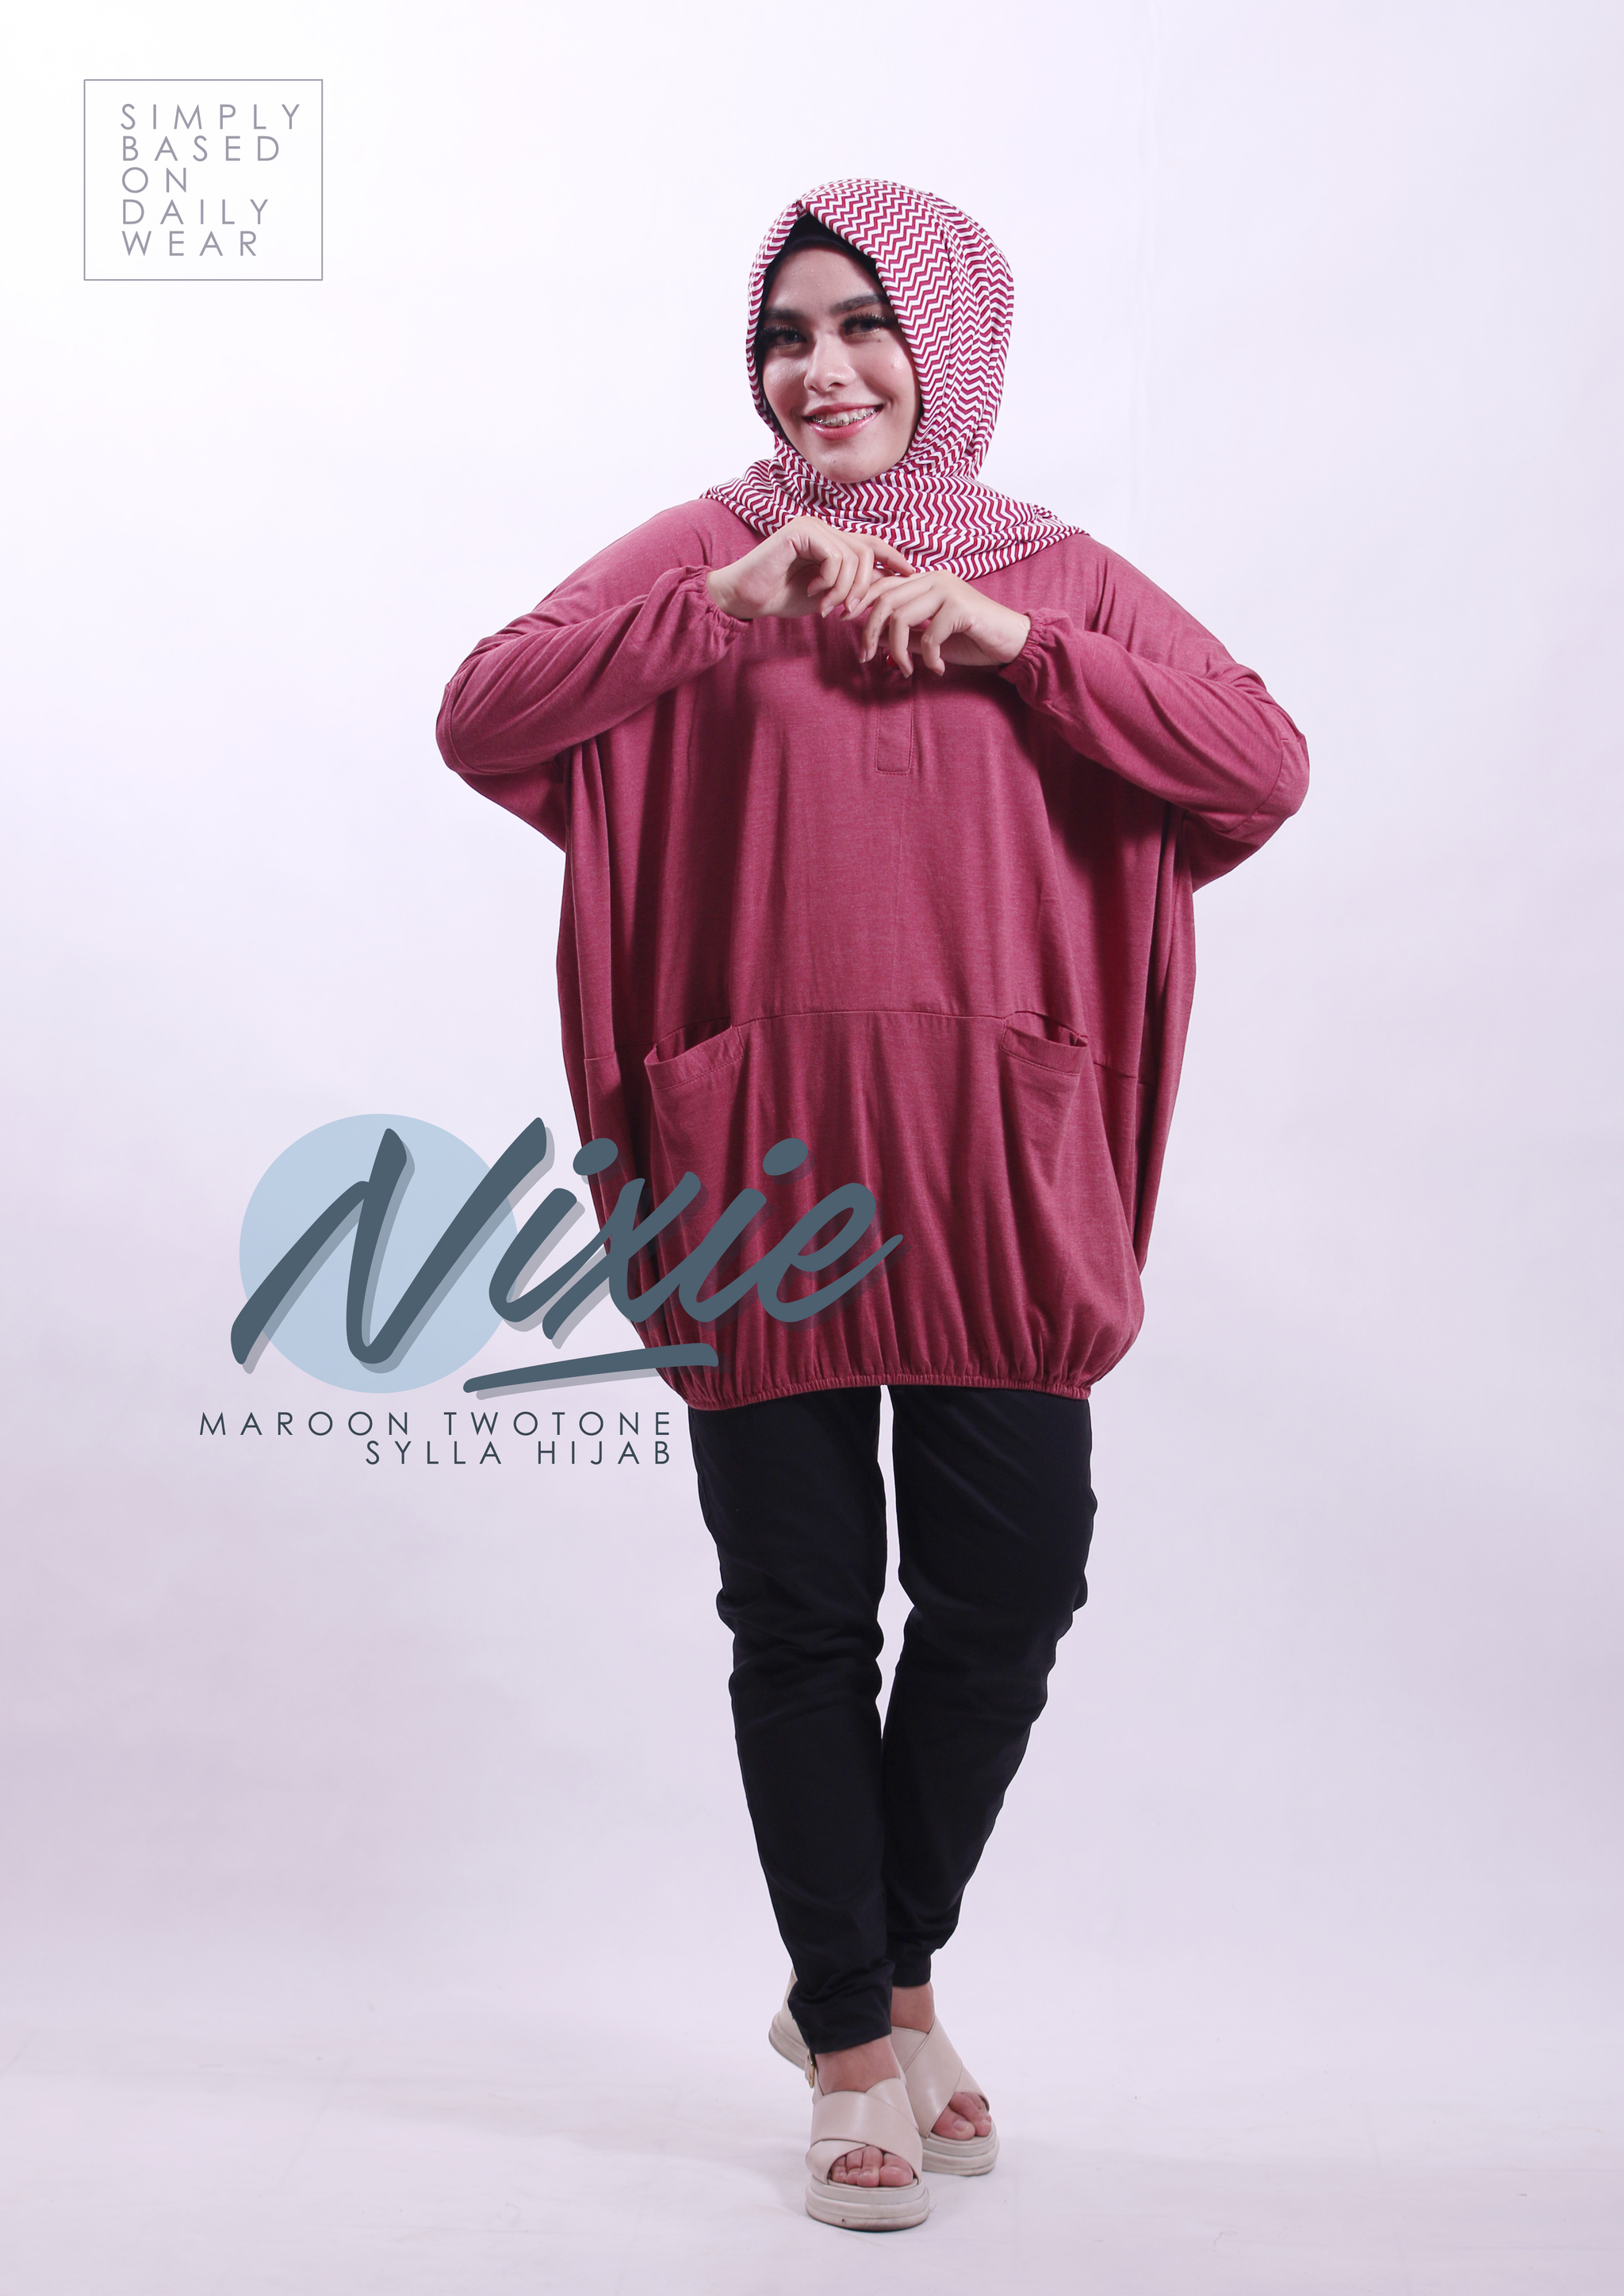 Tunic Nixie By Sylla Hijab